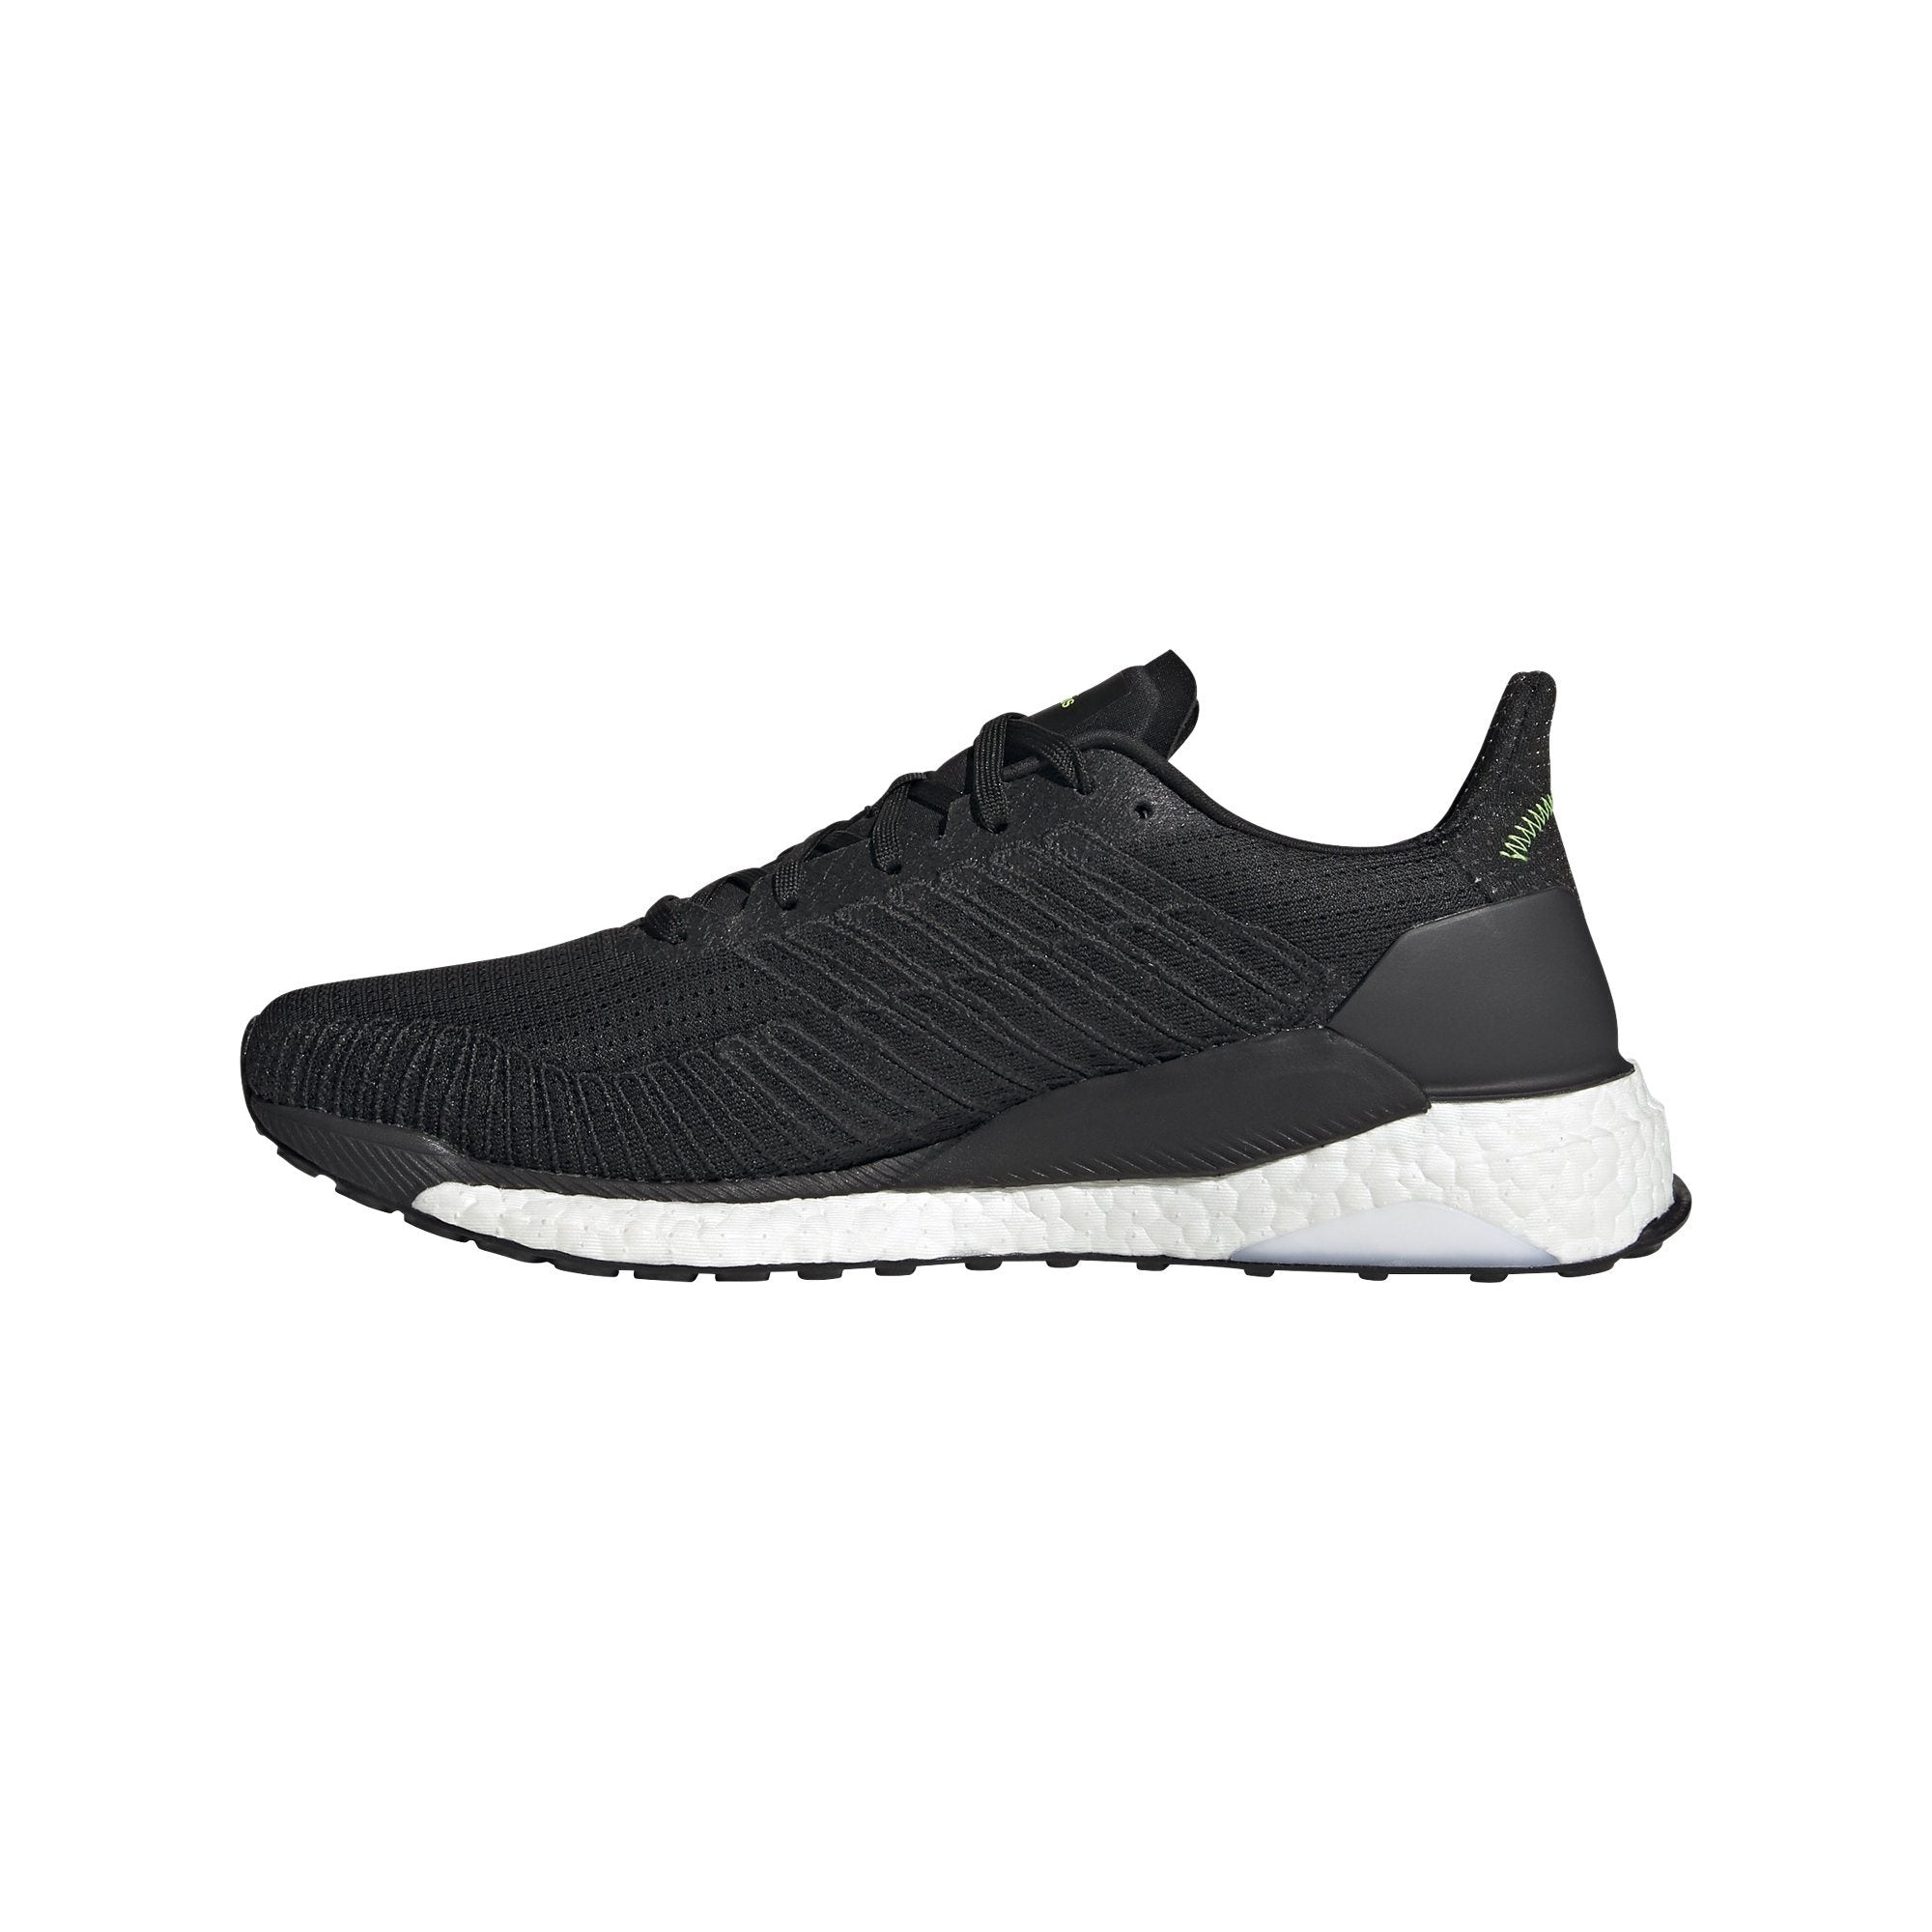 Adidas Mens Solarboost 19 - core black/ftwr white/signal green